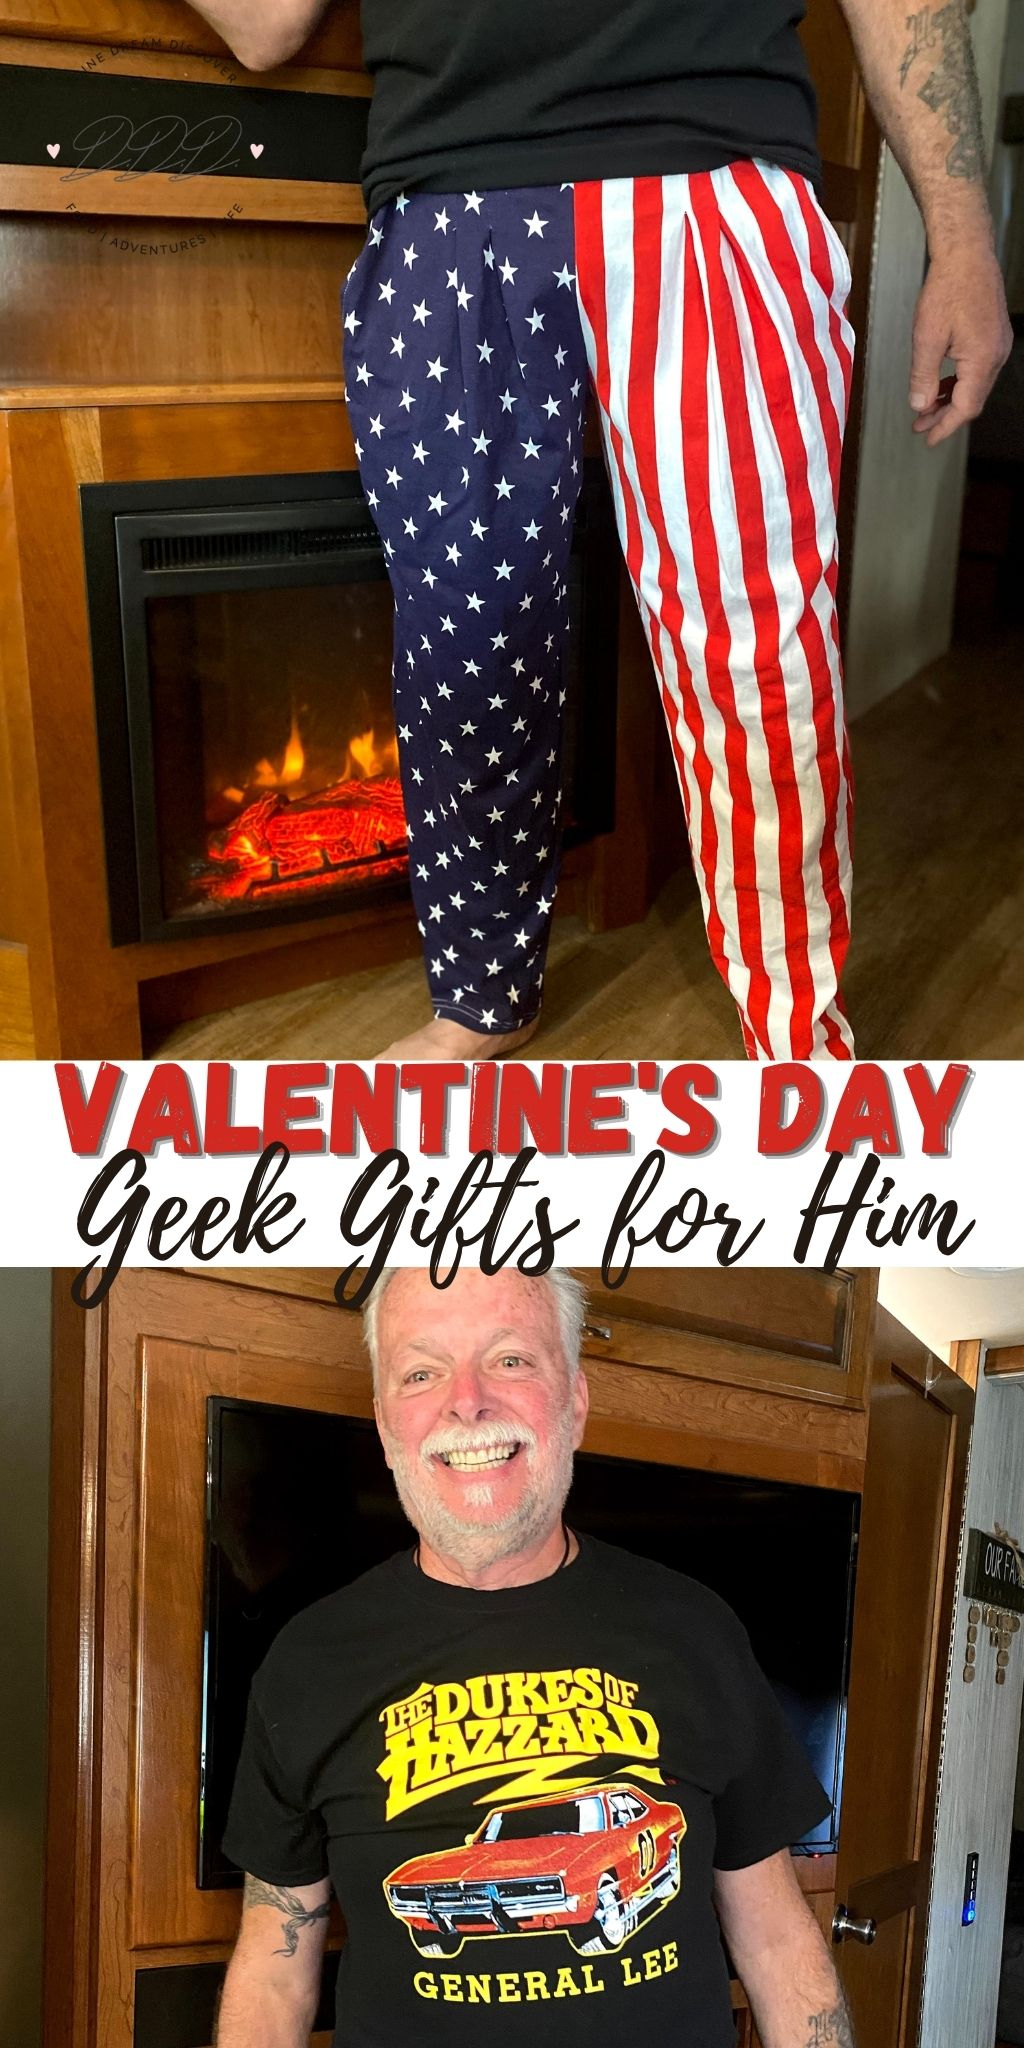 Geek Gifts for Him on Valentine's Day